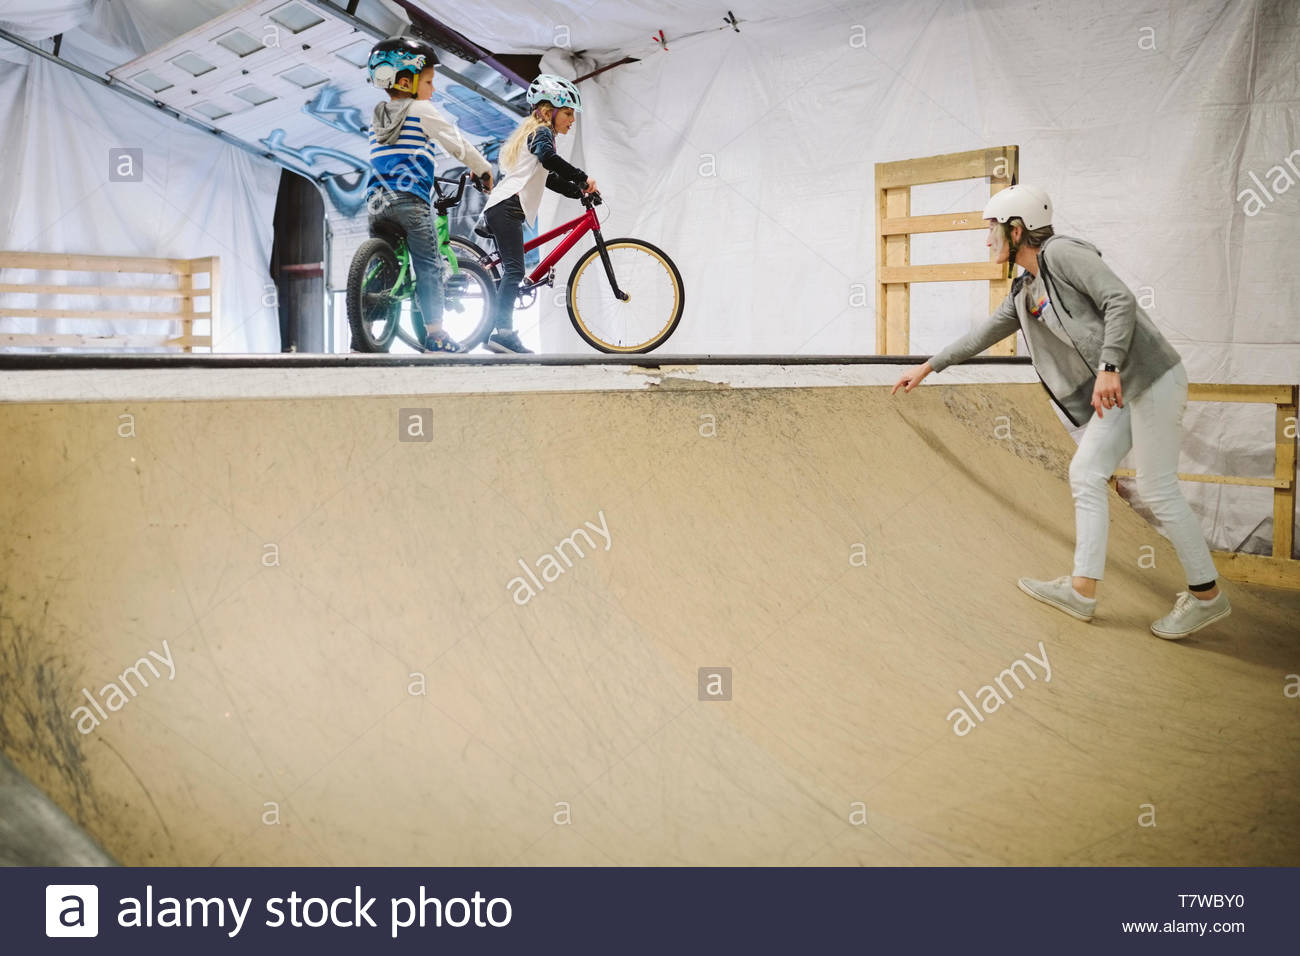 Mother guiding children on bmx bikes at ramp at indoor skate park - Stock Image